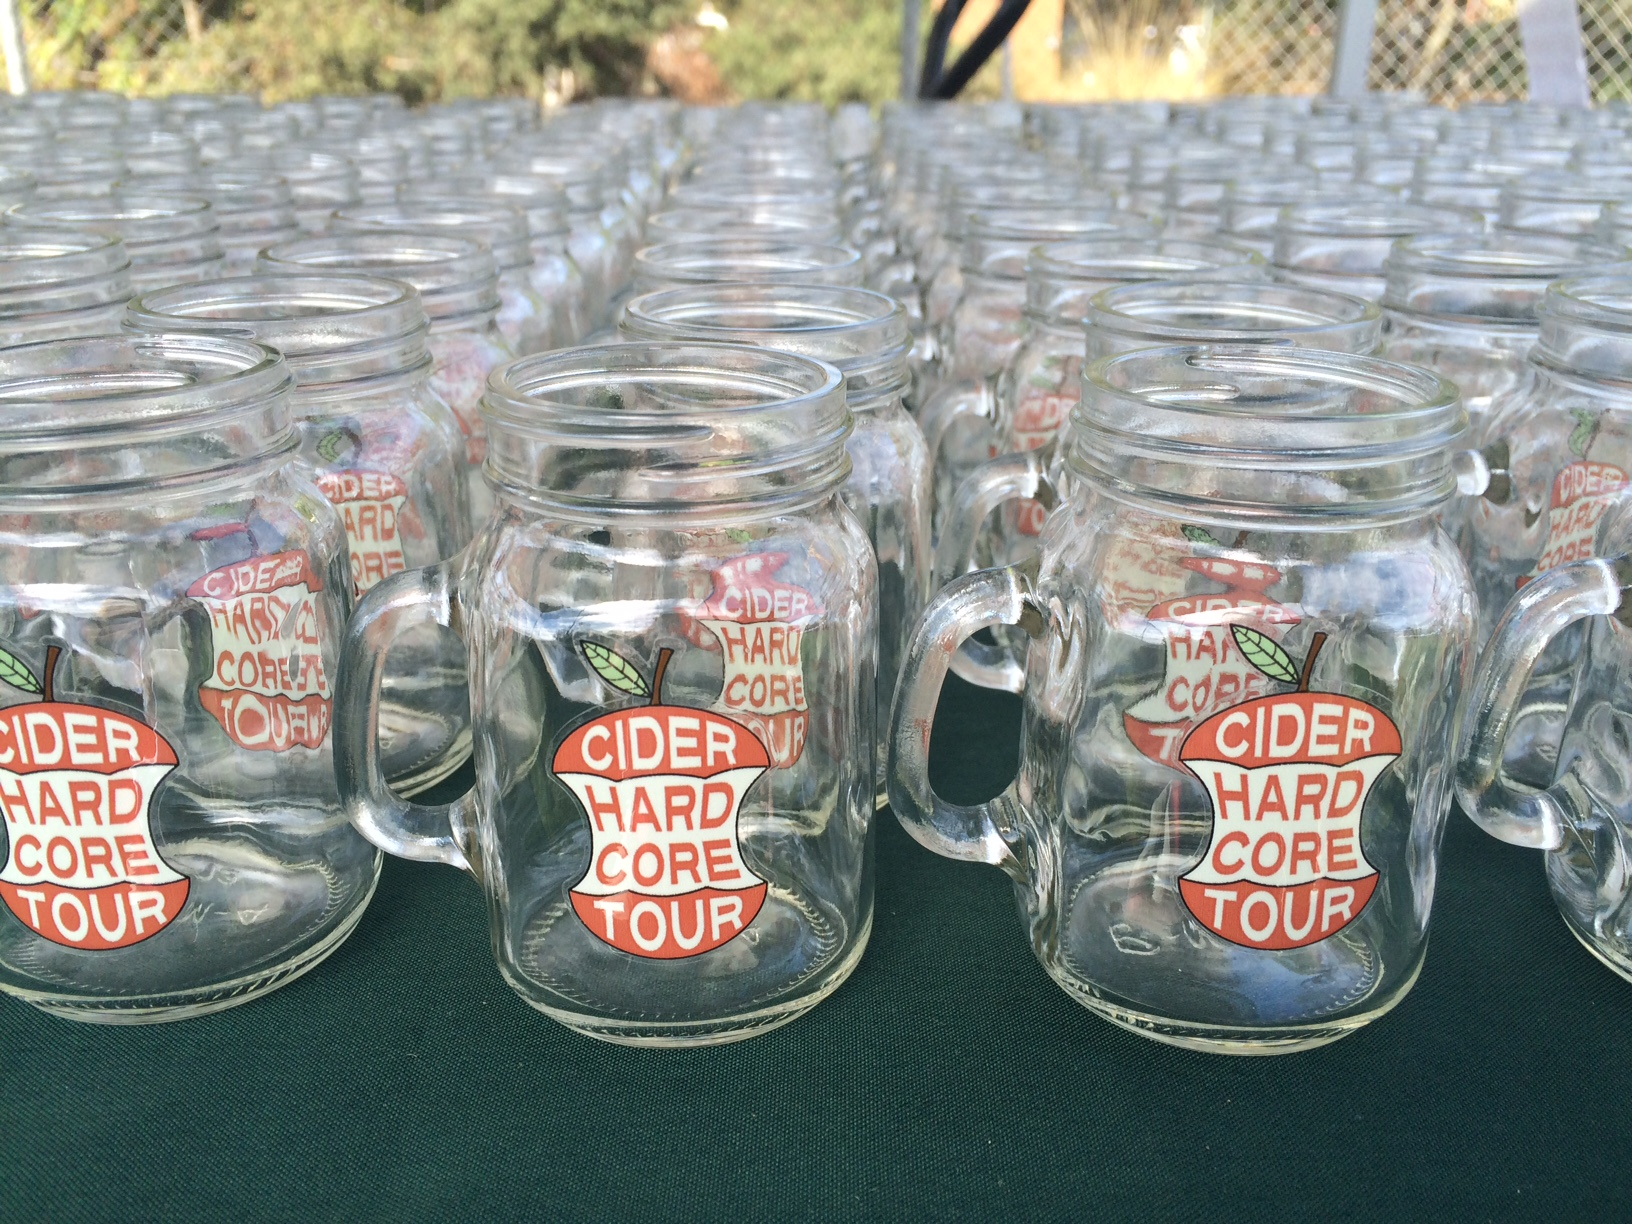 Hard Core Cider Tour tasting mugs